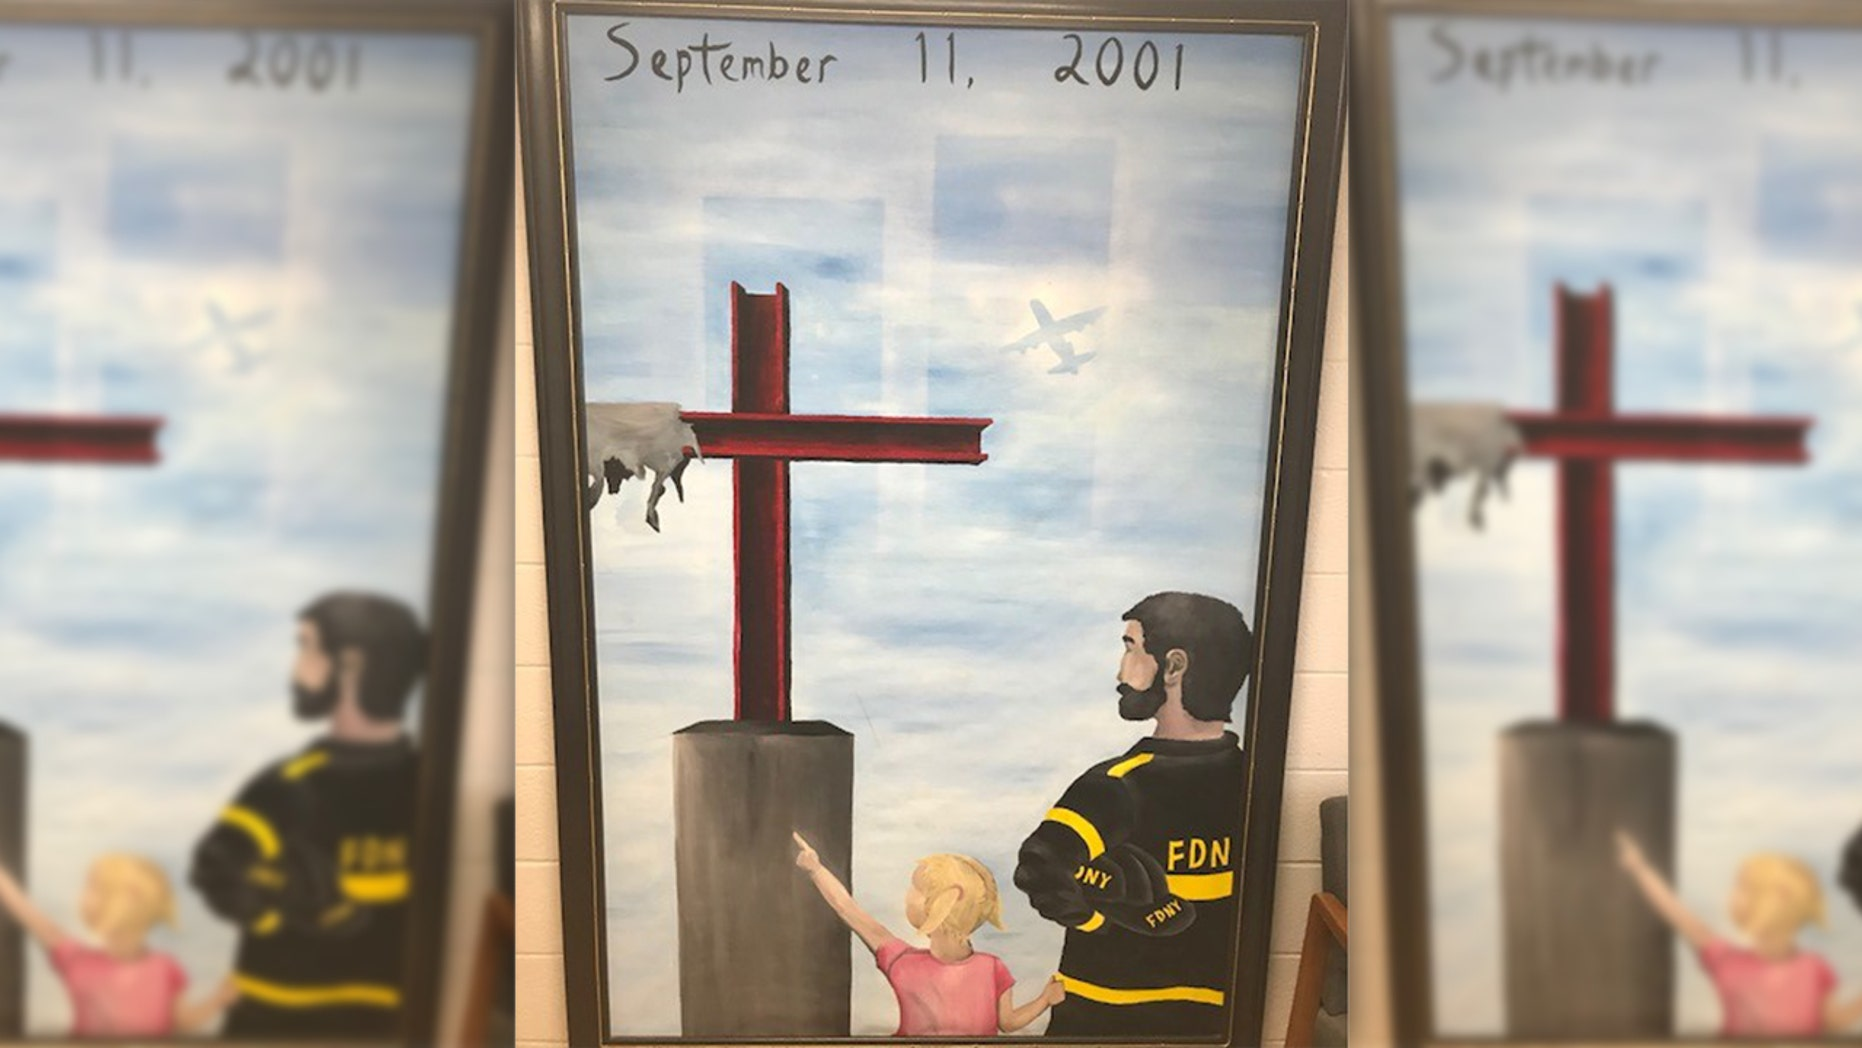 Group says painting of Ground Zero Cross at Missouri